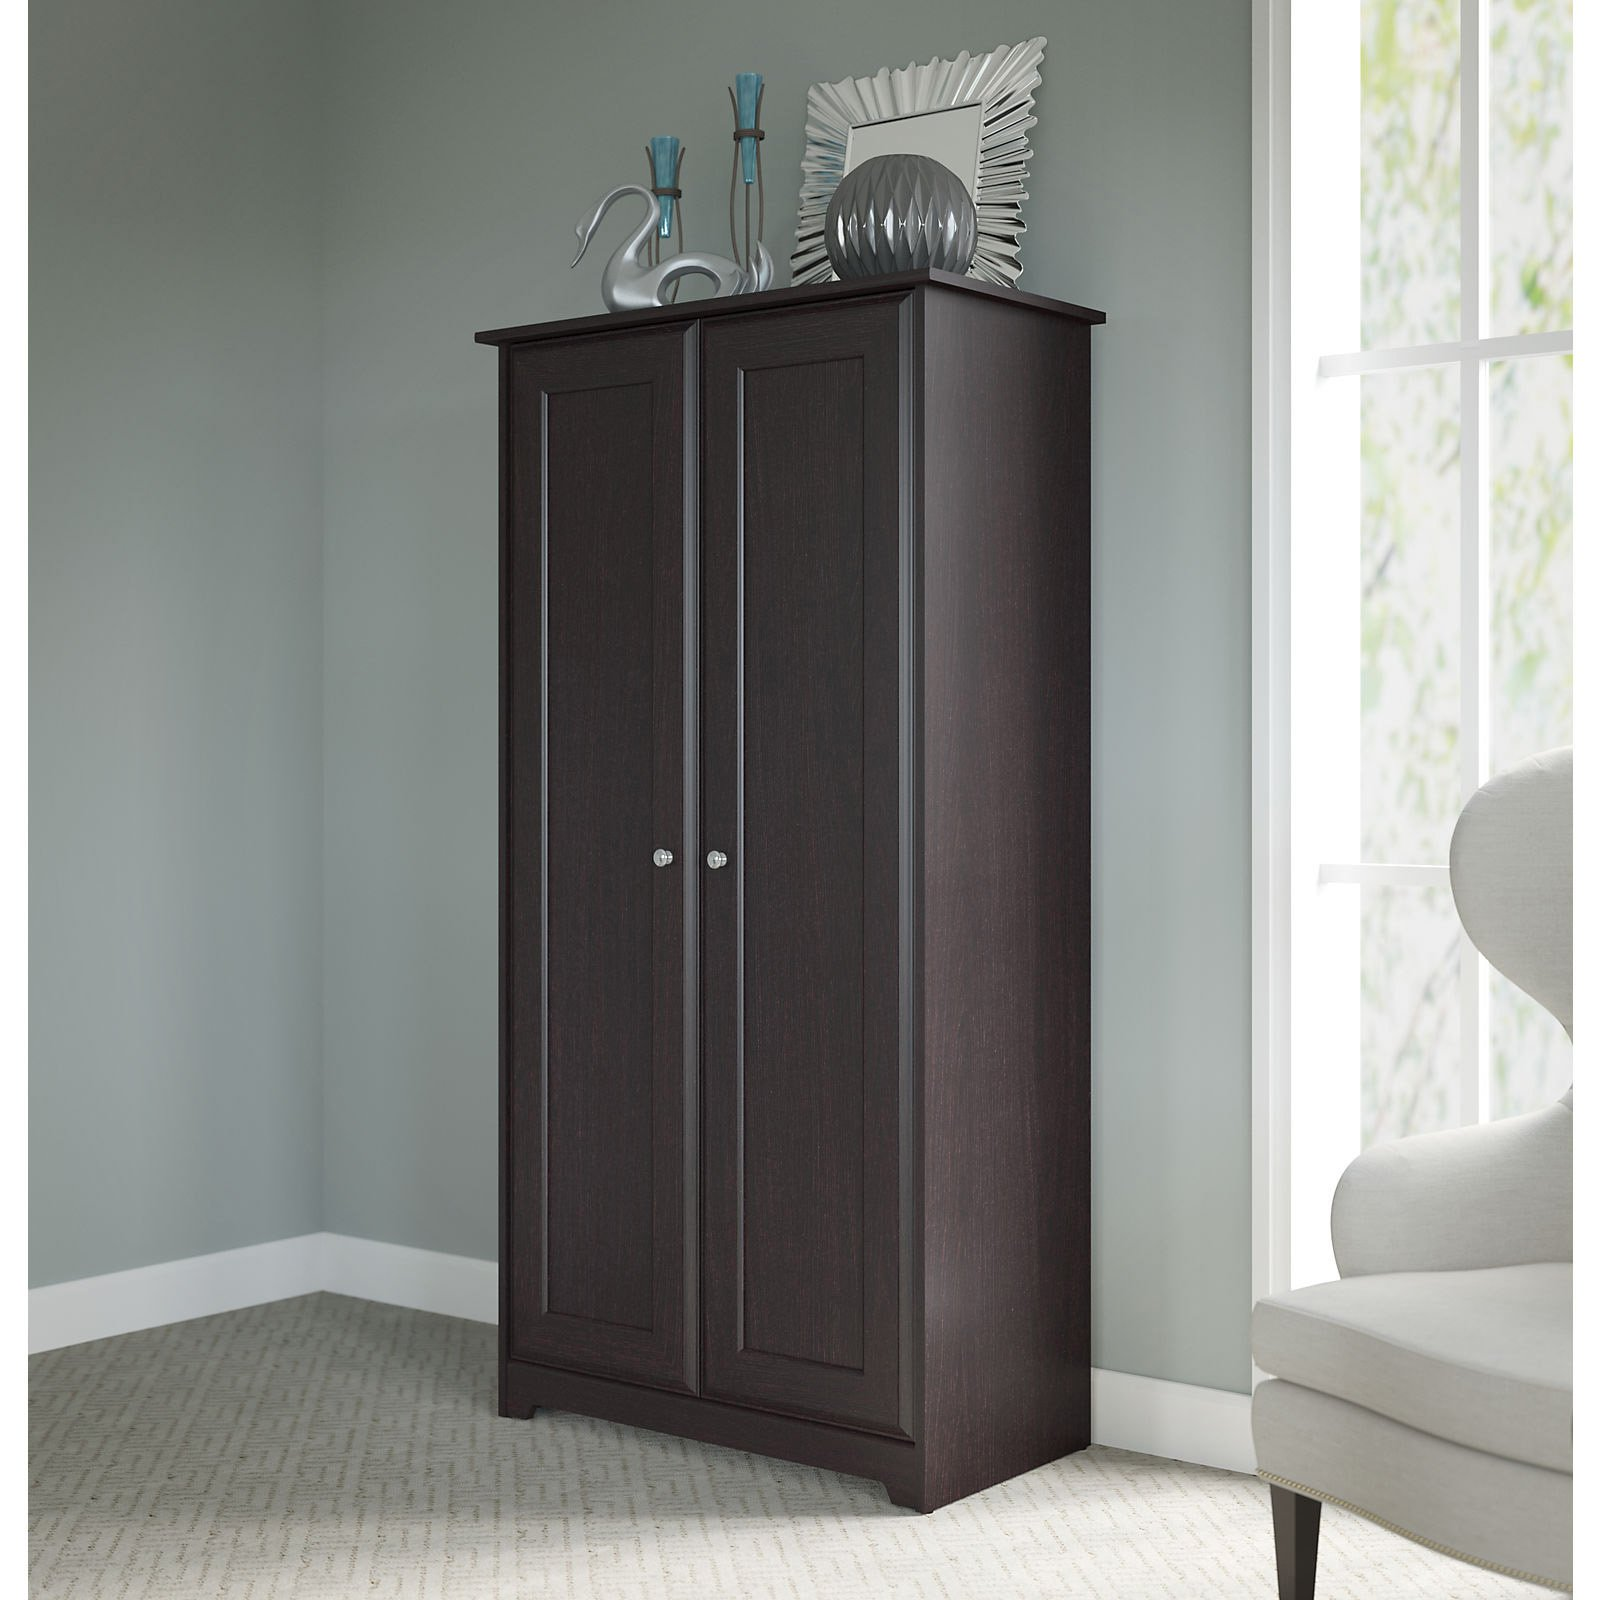 Beau Bush Furniture Cabot Tall Storage Cabinet With Doors In Espresso Oak